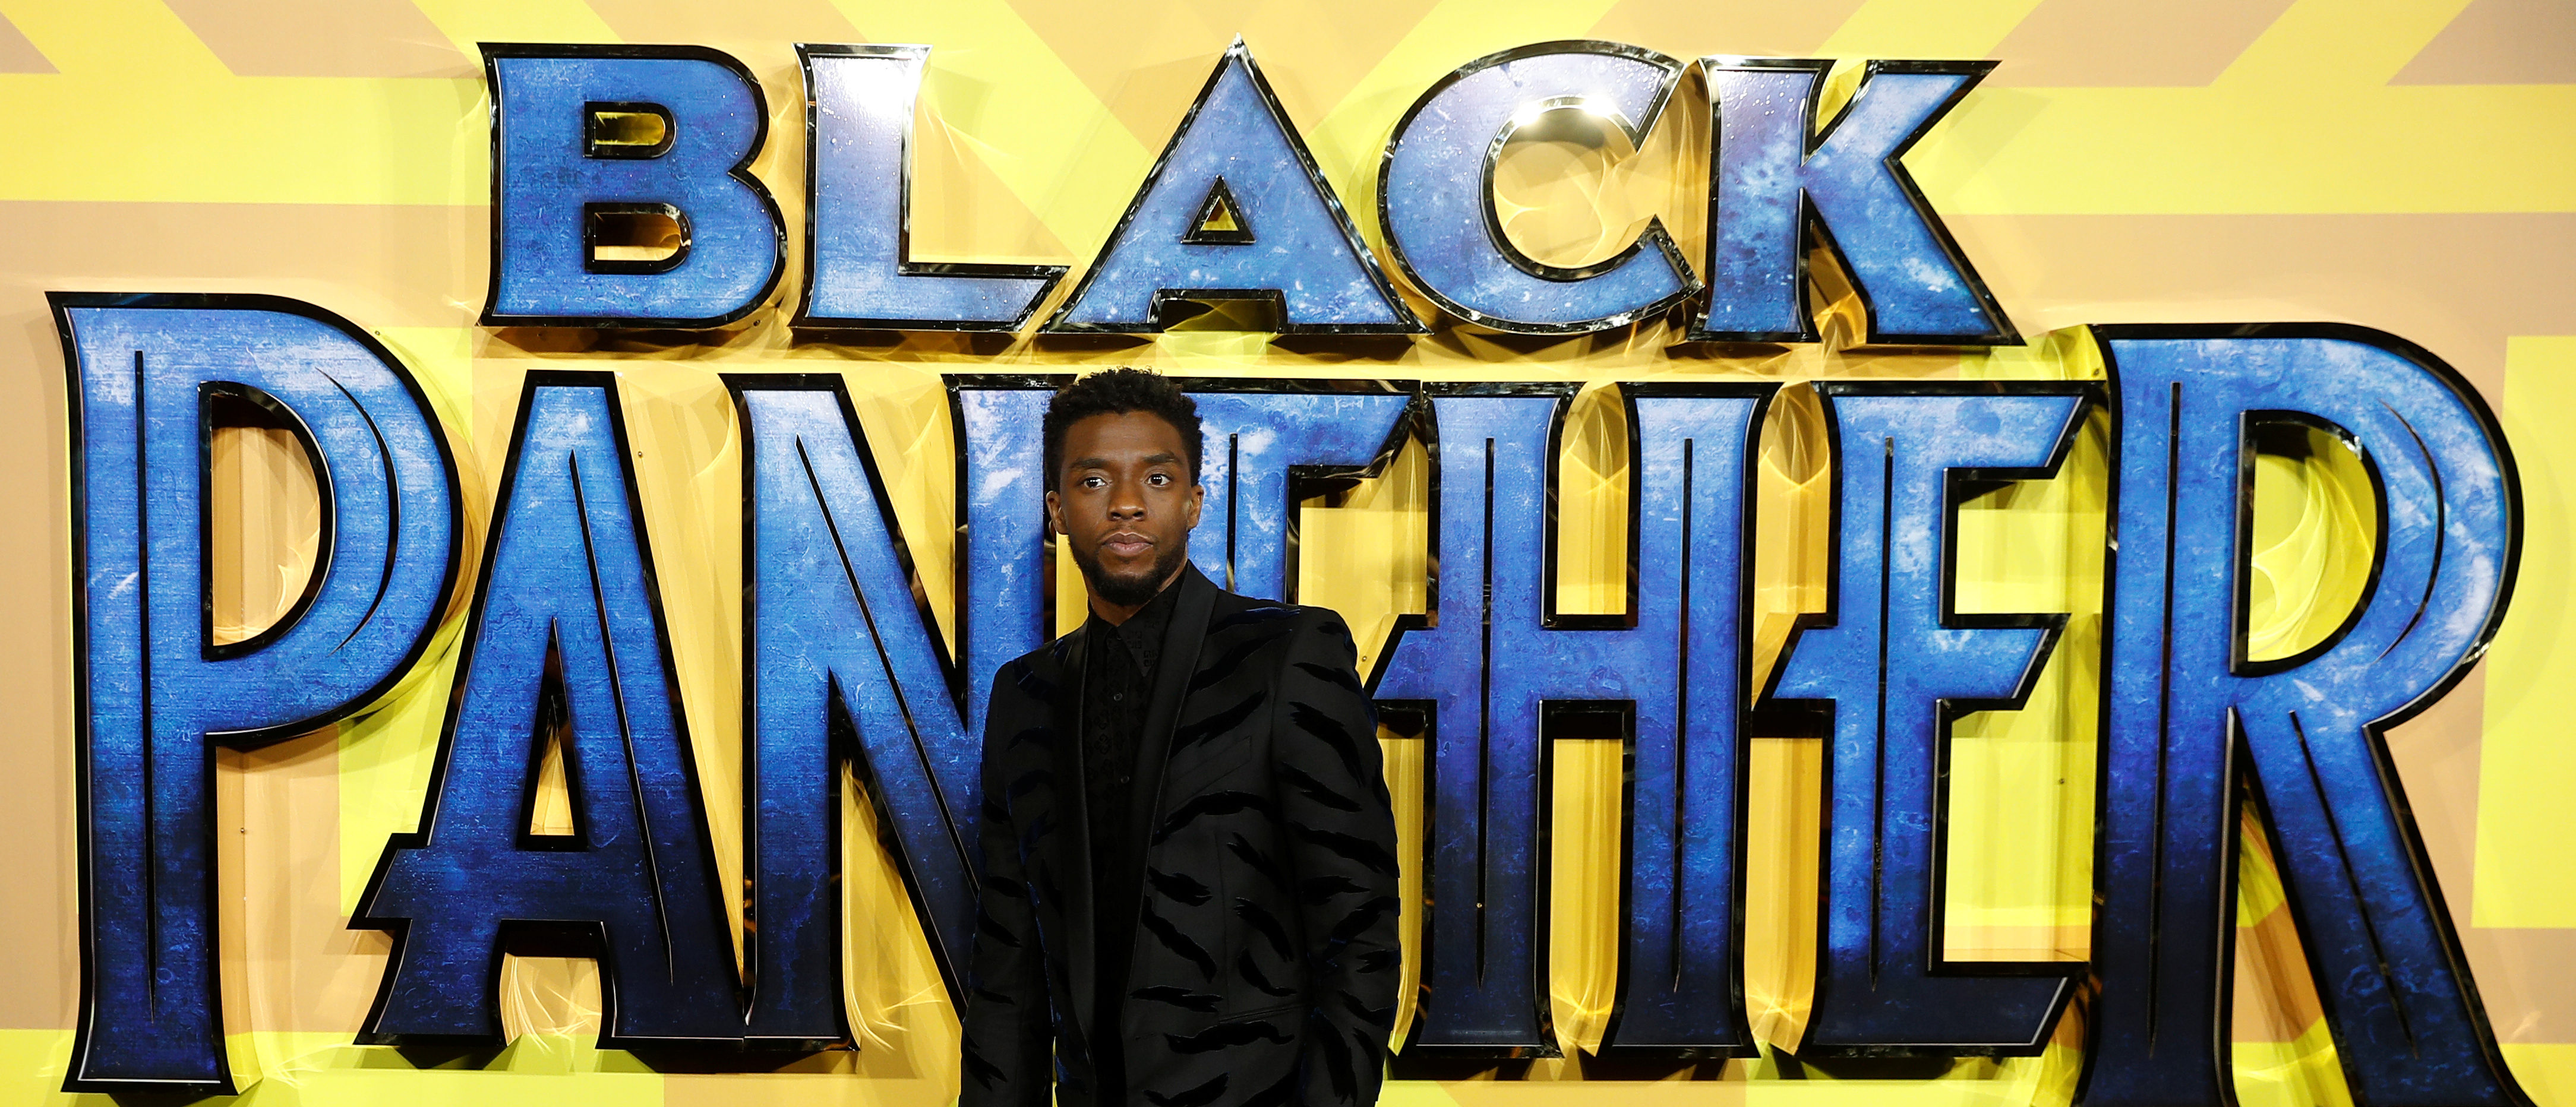 Actor Chadwick Boseman arrives at the premiere of the new Marvel superhero film 'Black Panther' in London, Britain February 8, 2018. REUTERS/Peter Nicholls